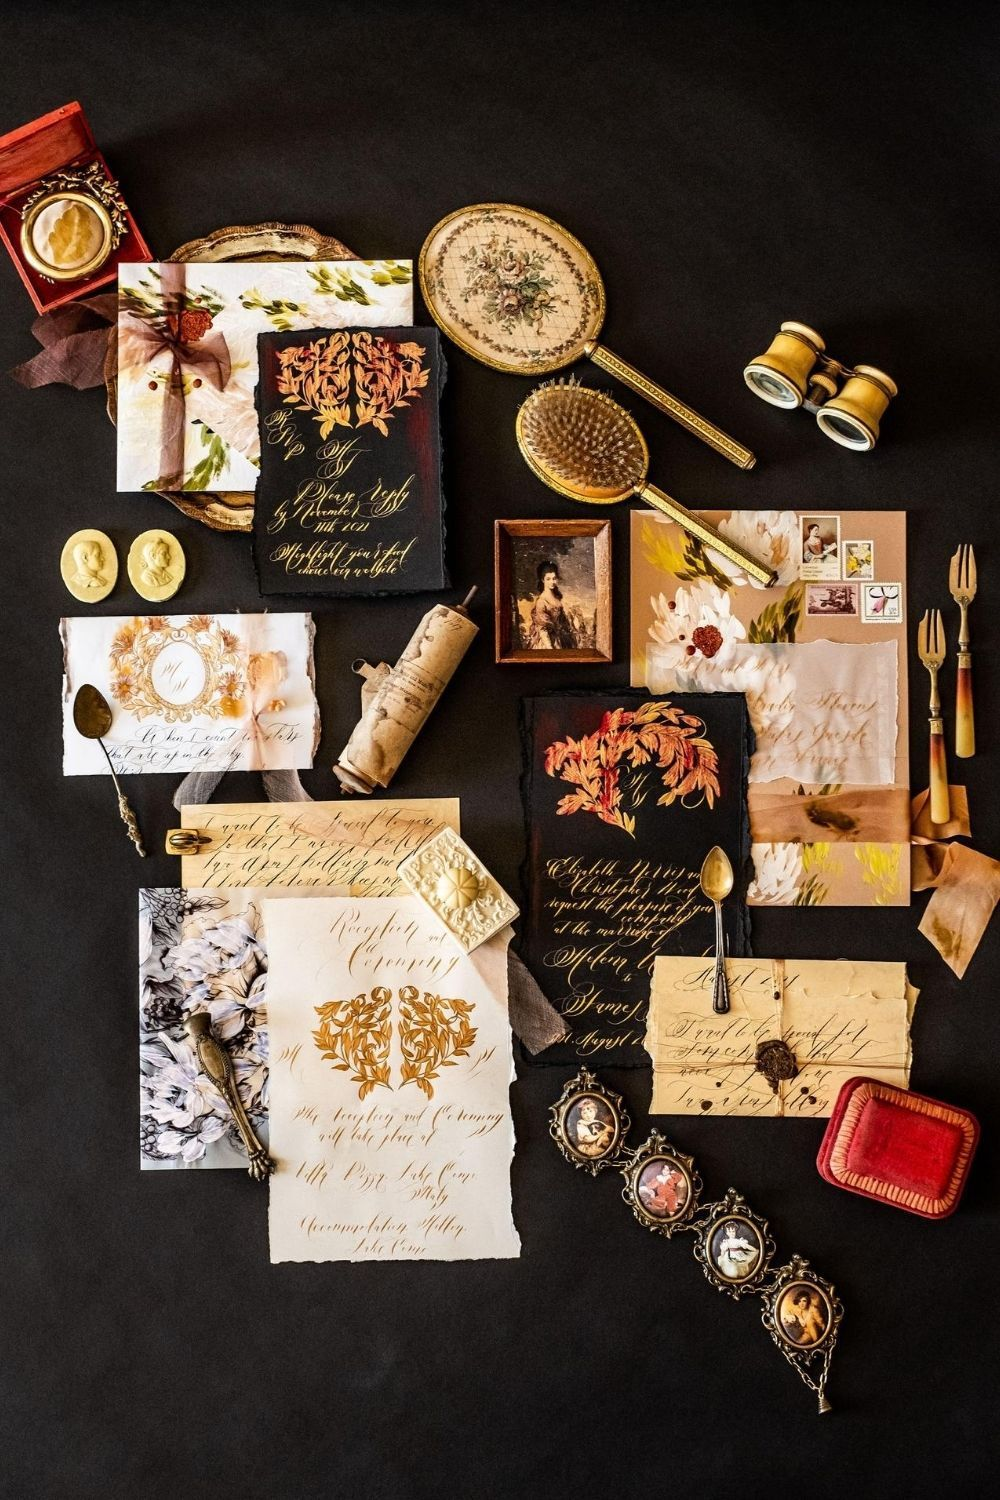 Luxury Venice Wedding Invitations Richly Hand Painted For Opulence In 2020 Moody Wedding Invitations Black Tie Wedding Invitations Creative Wedding Invitations